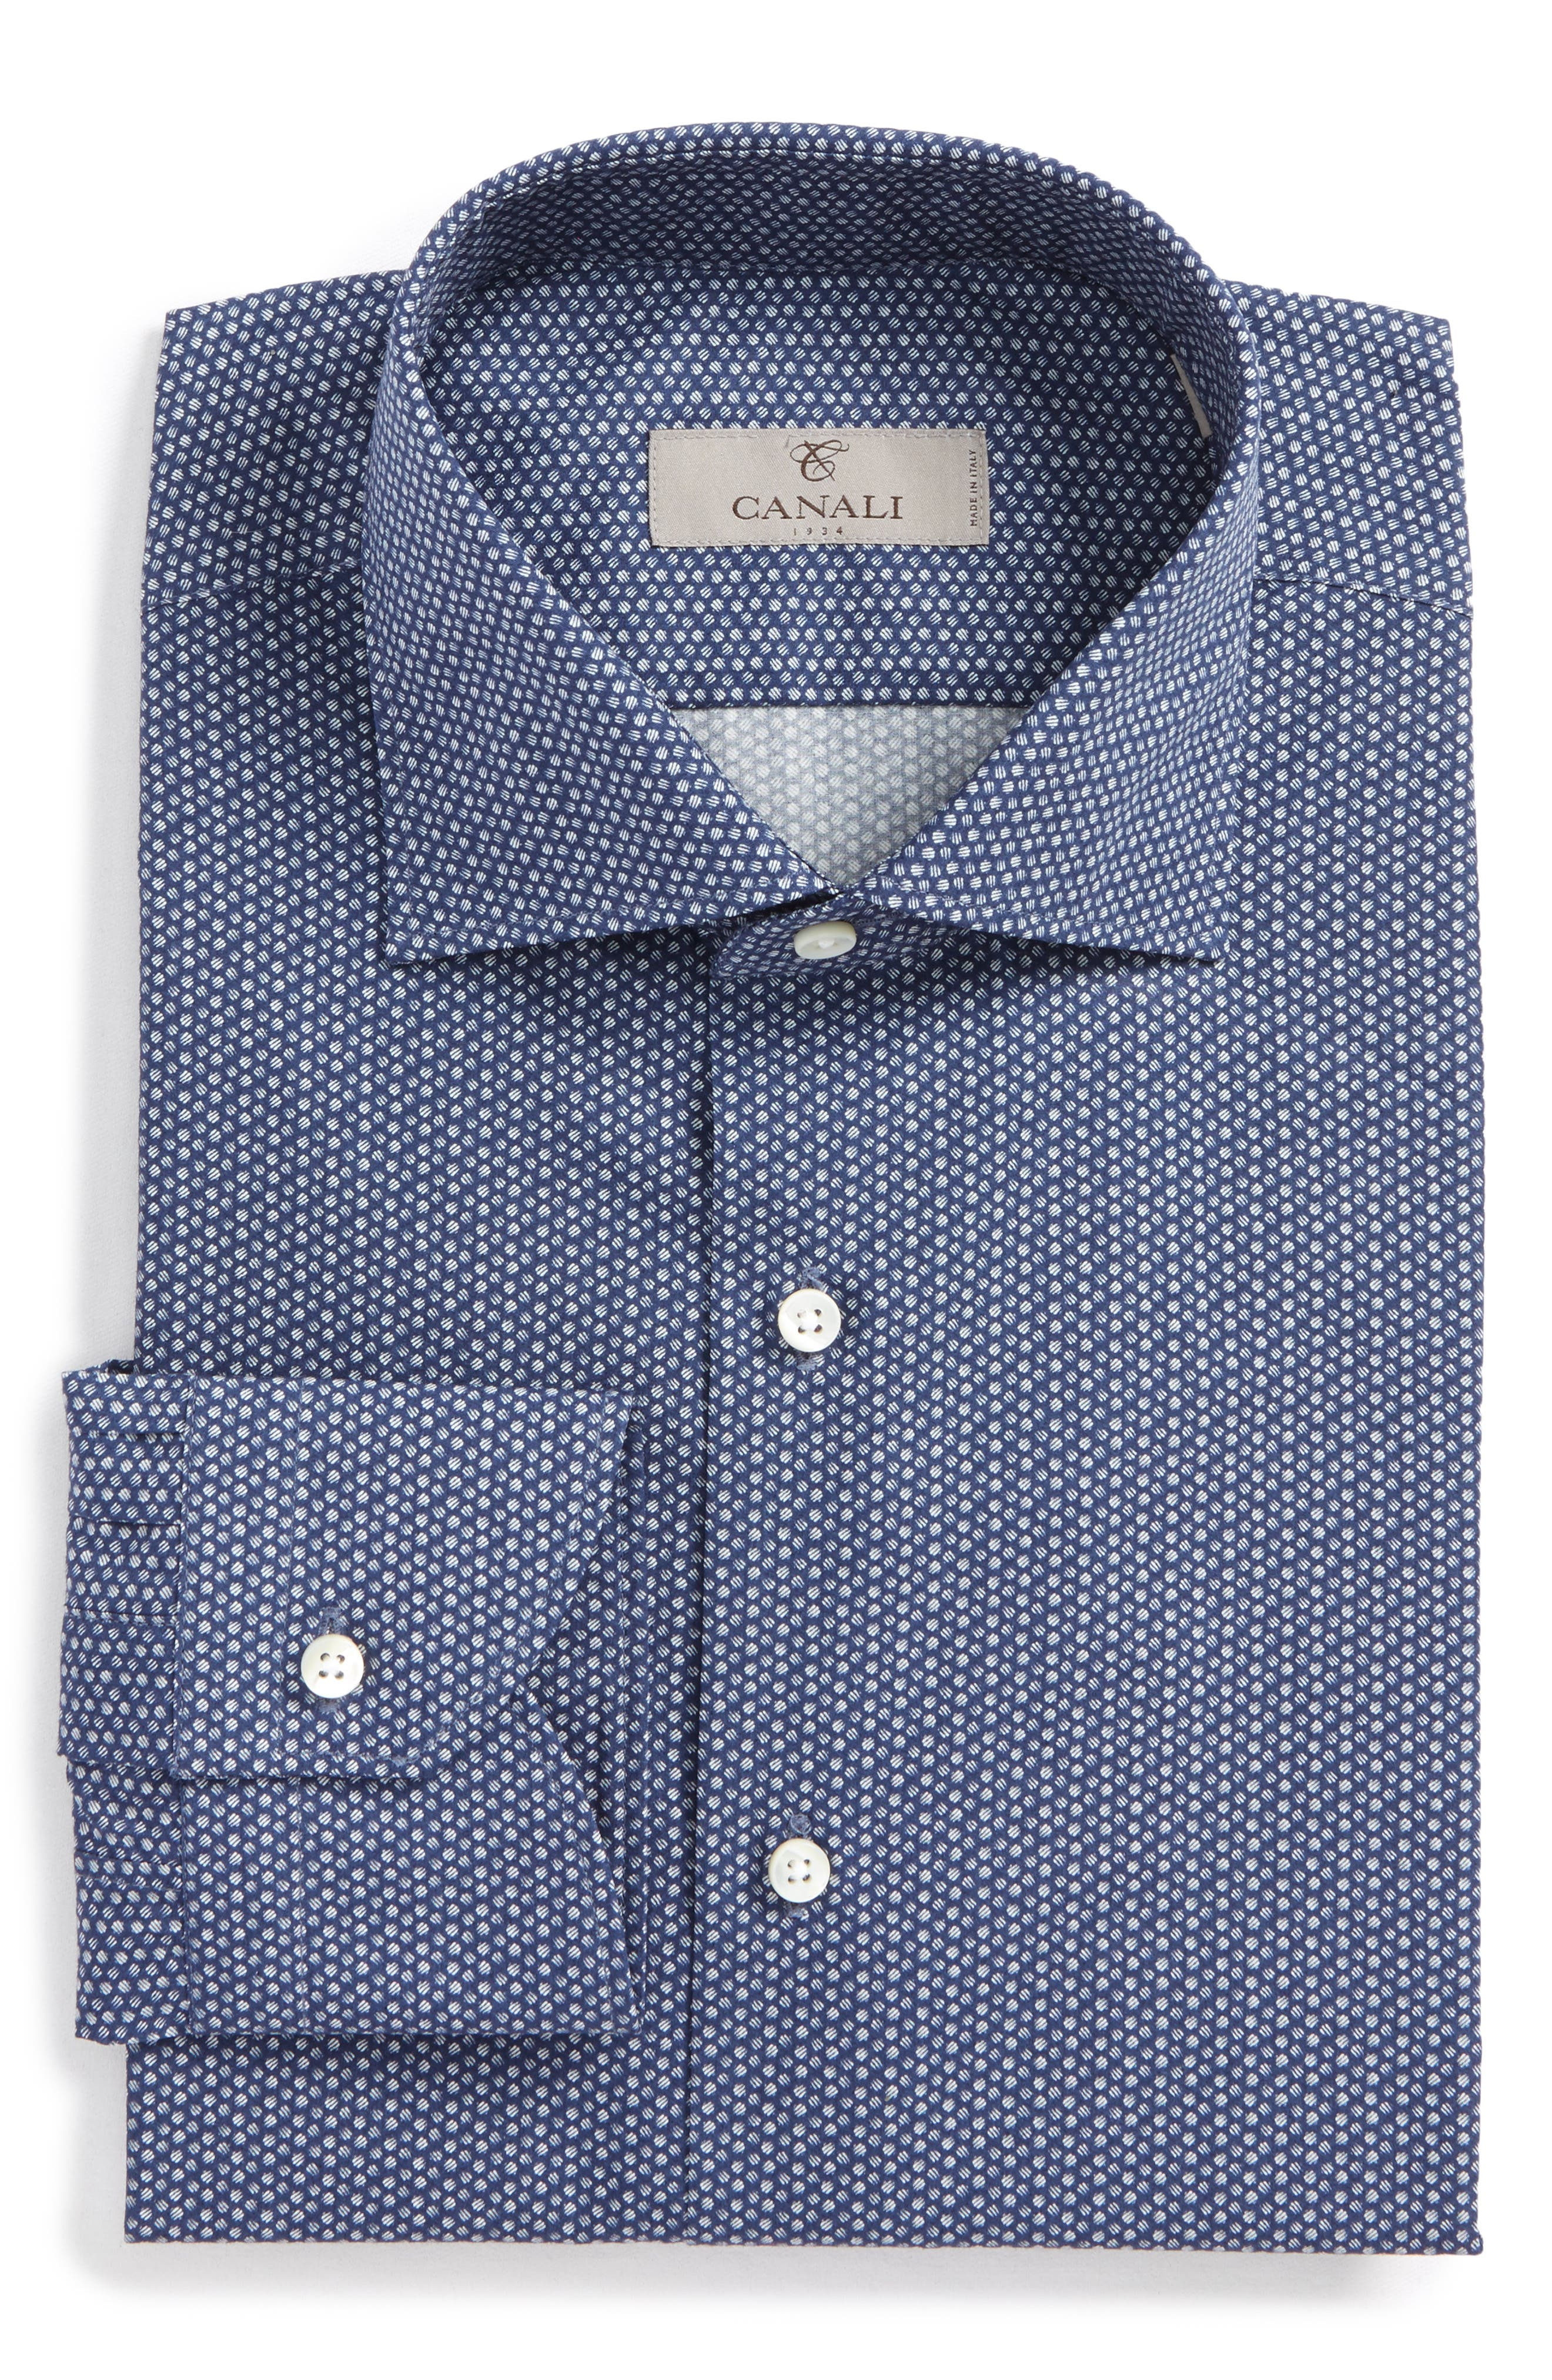 Main Image - Canali Regular Fit Dot Dress Shirt